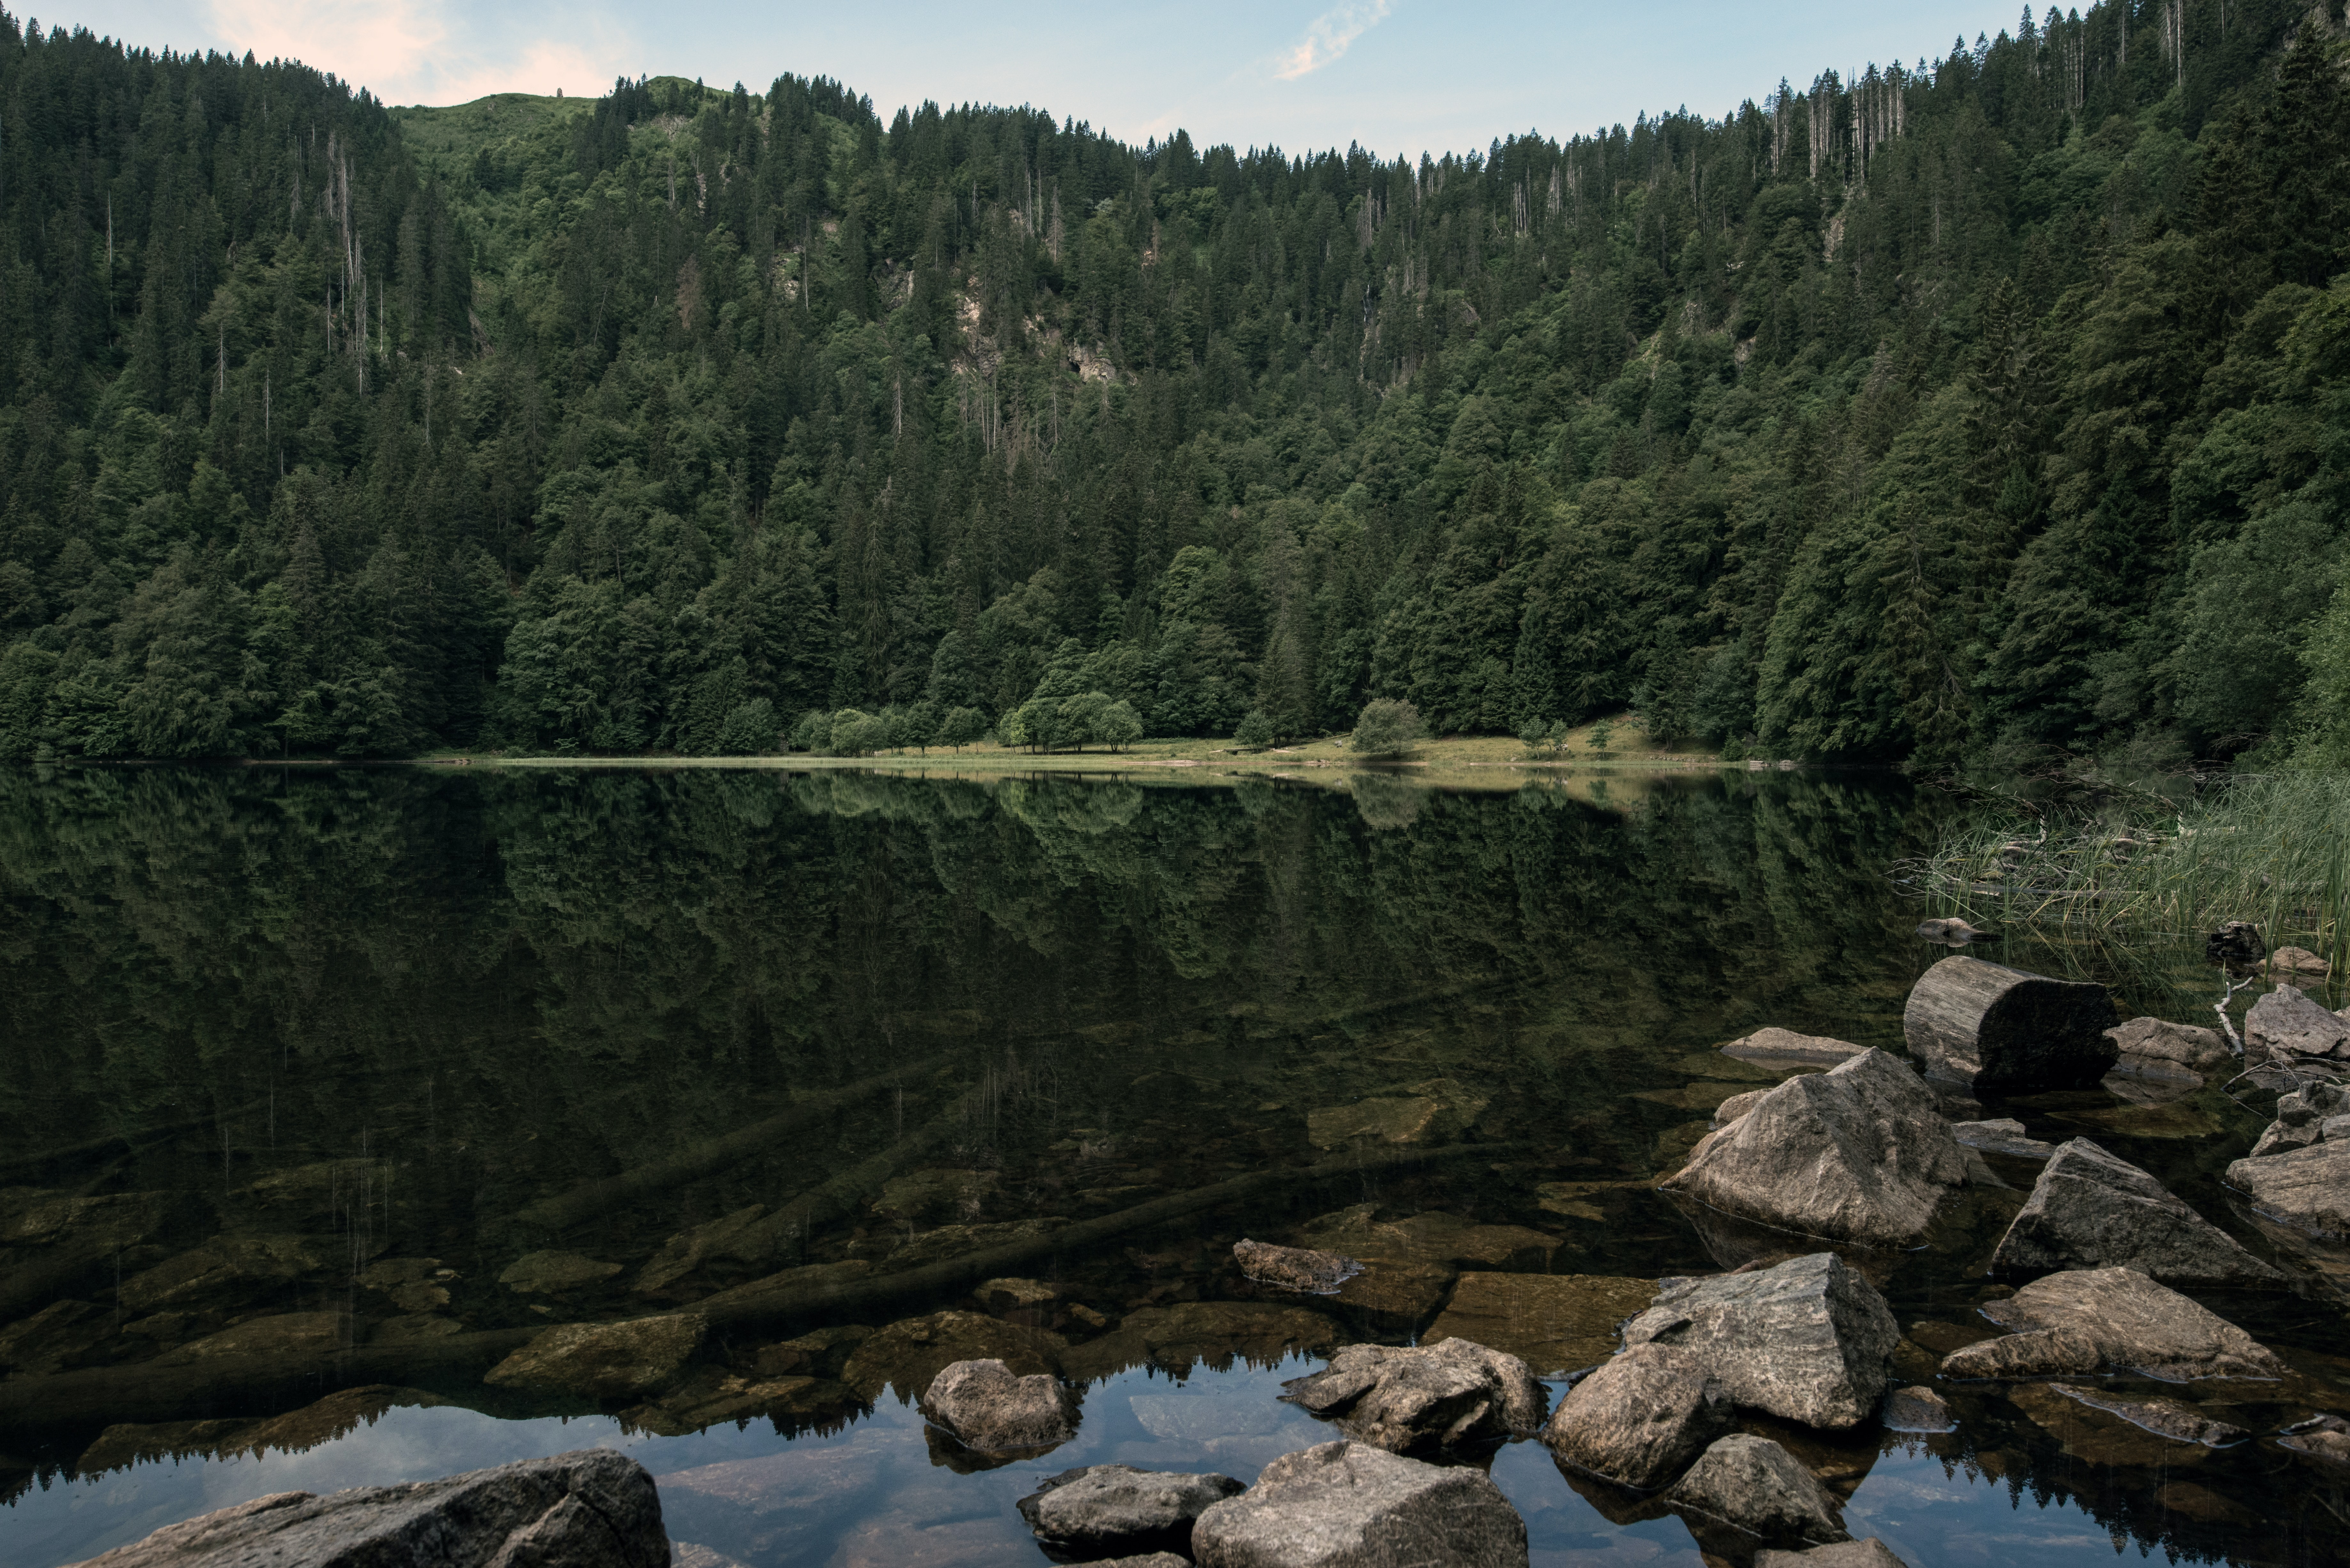 Best National Parks In Germany